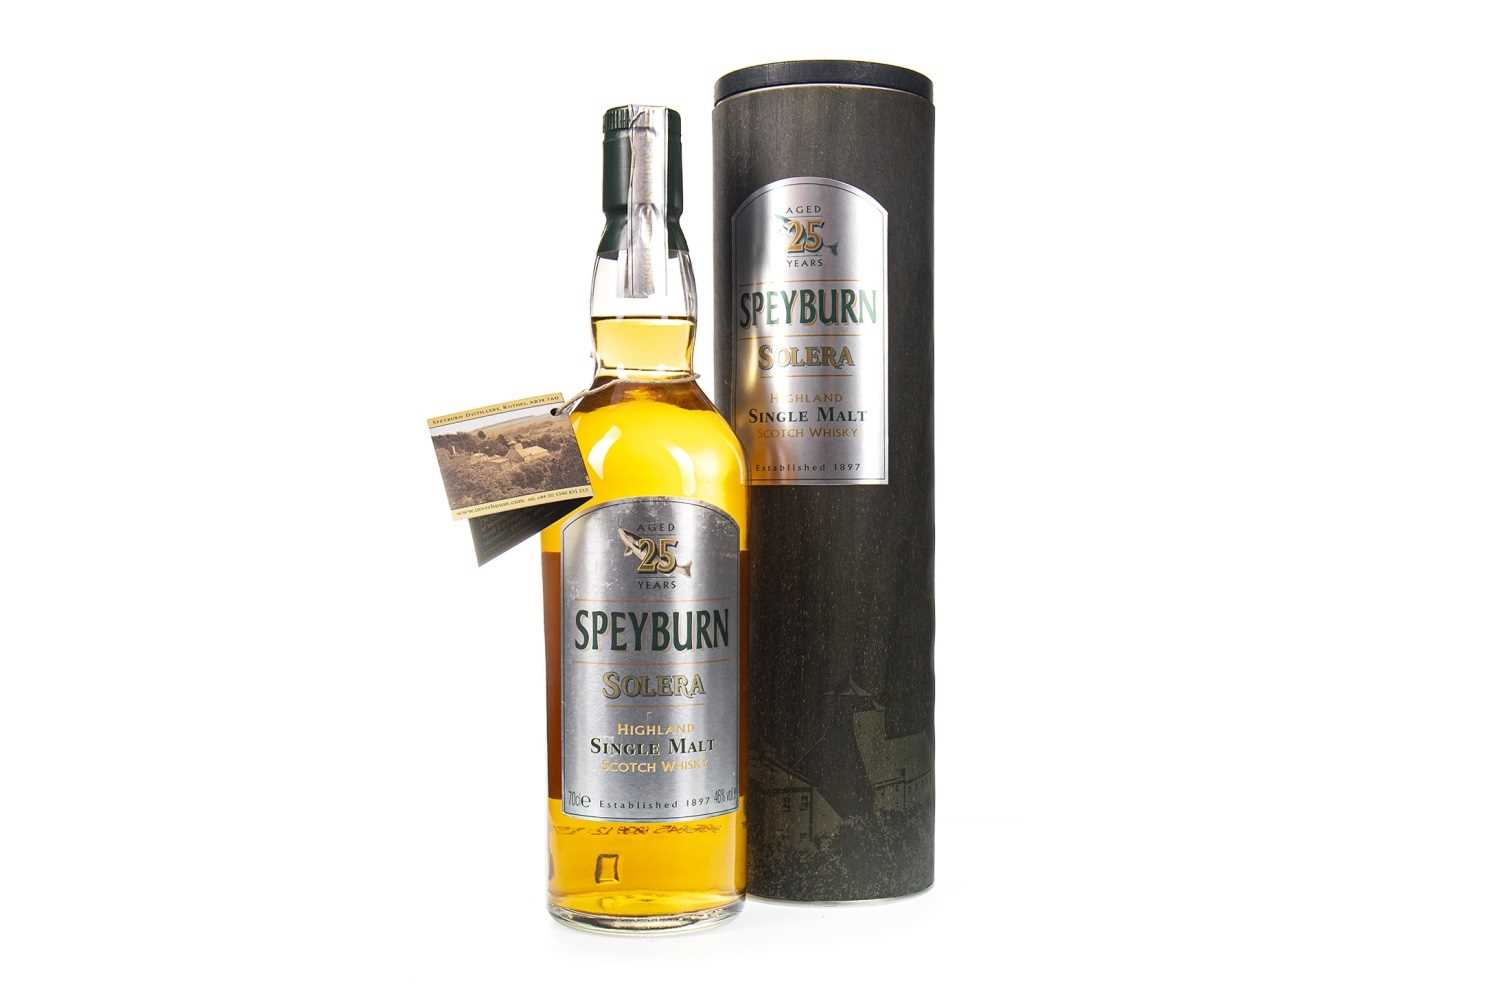 Lot 315-SPEYBURN SOLERA AGED 25 YEARS